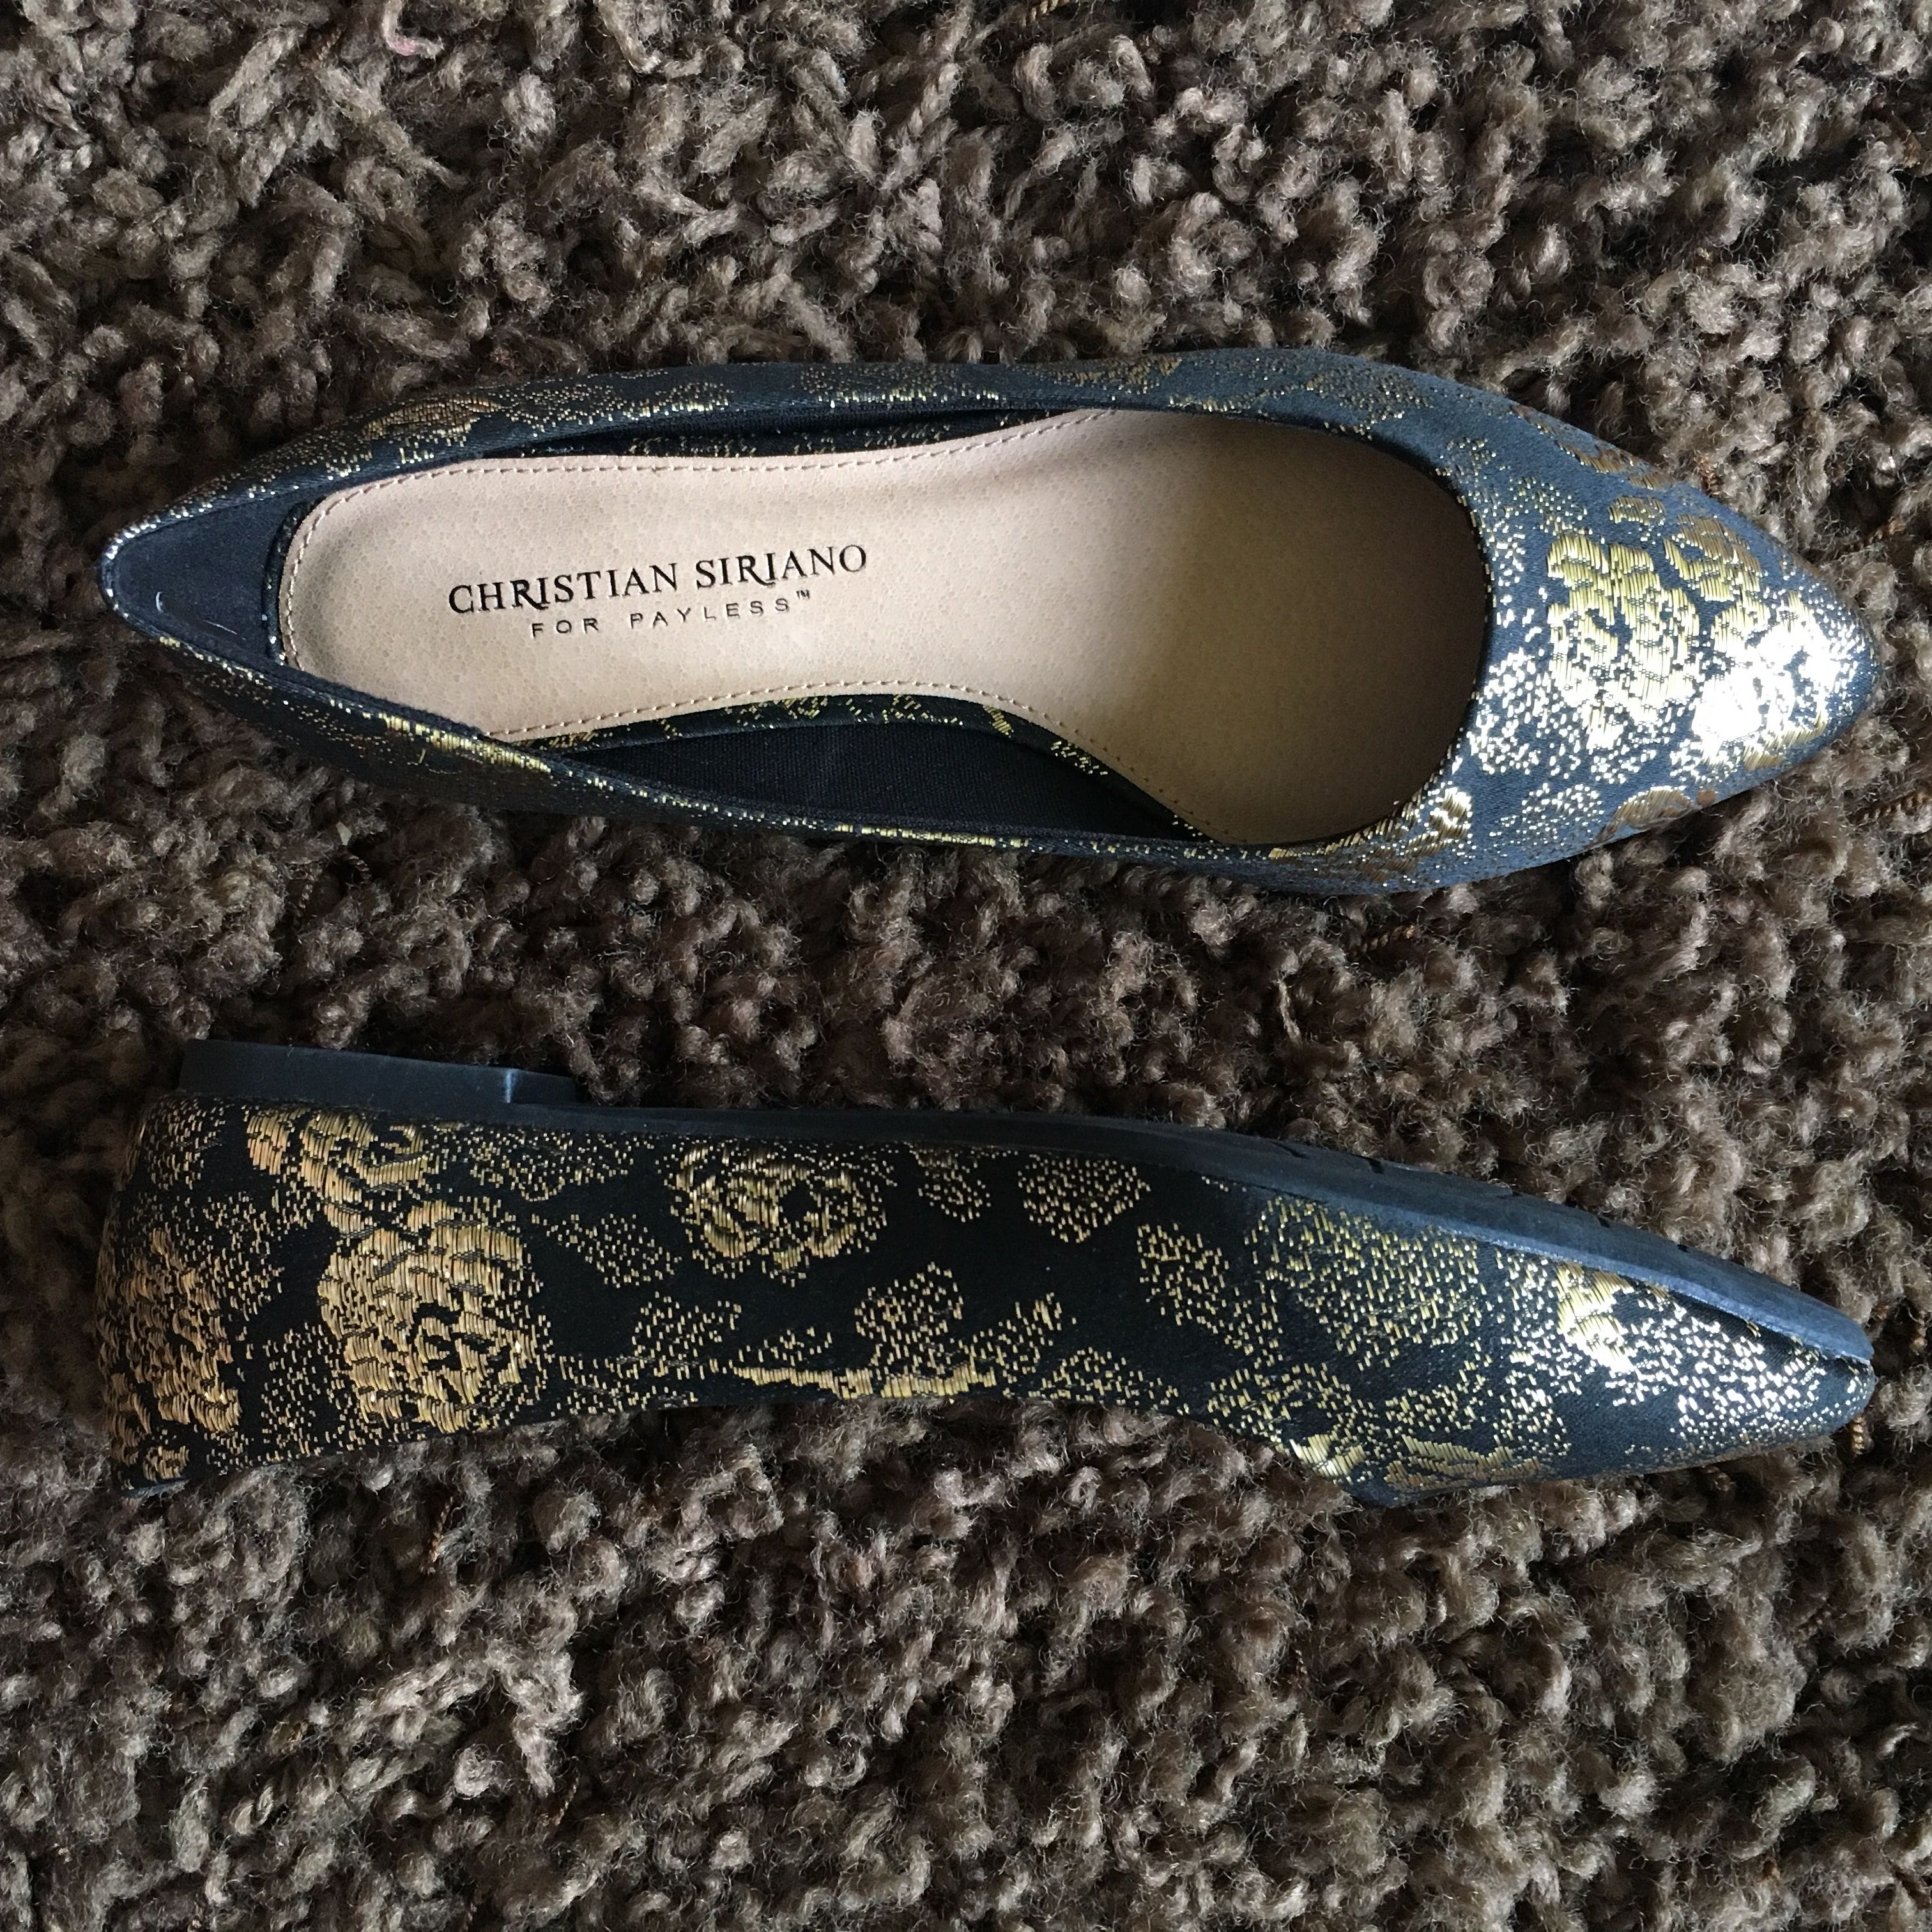 Christian Siriano Flats for Payless